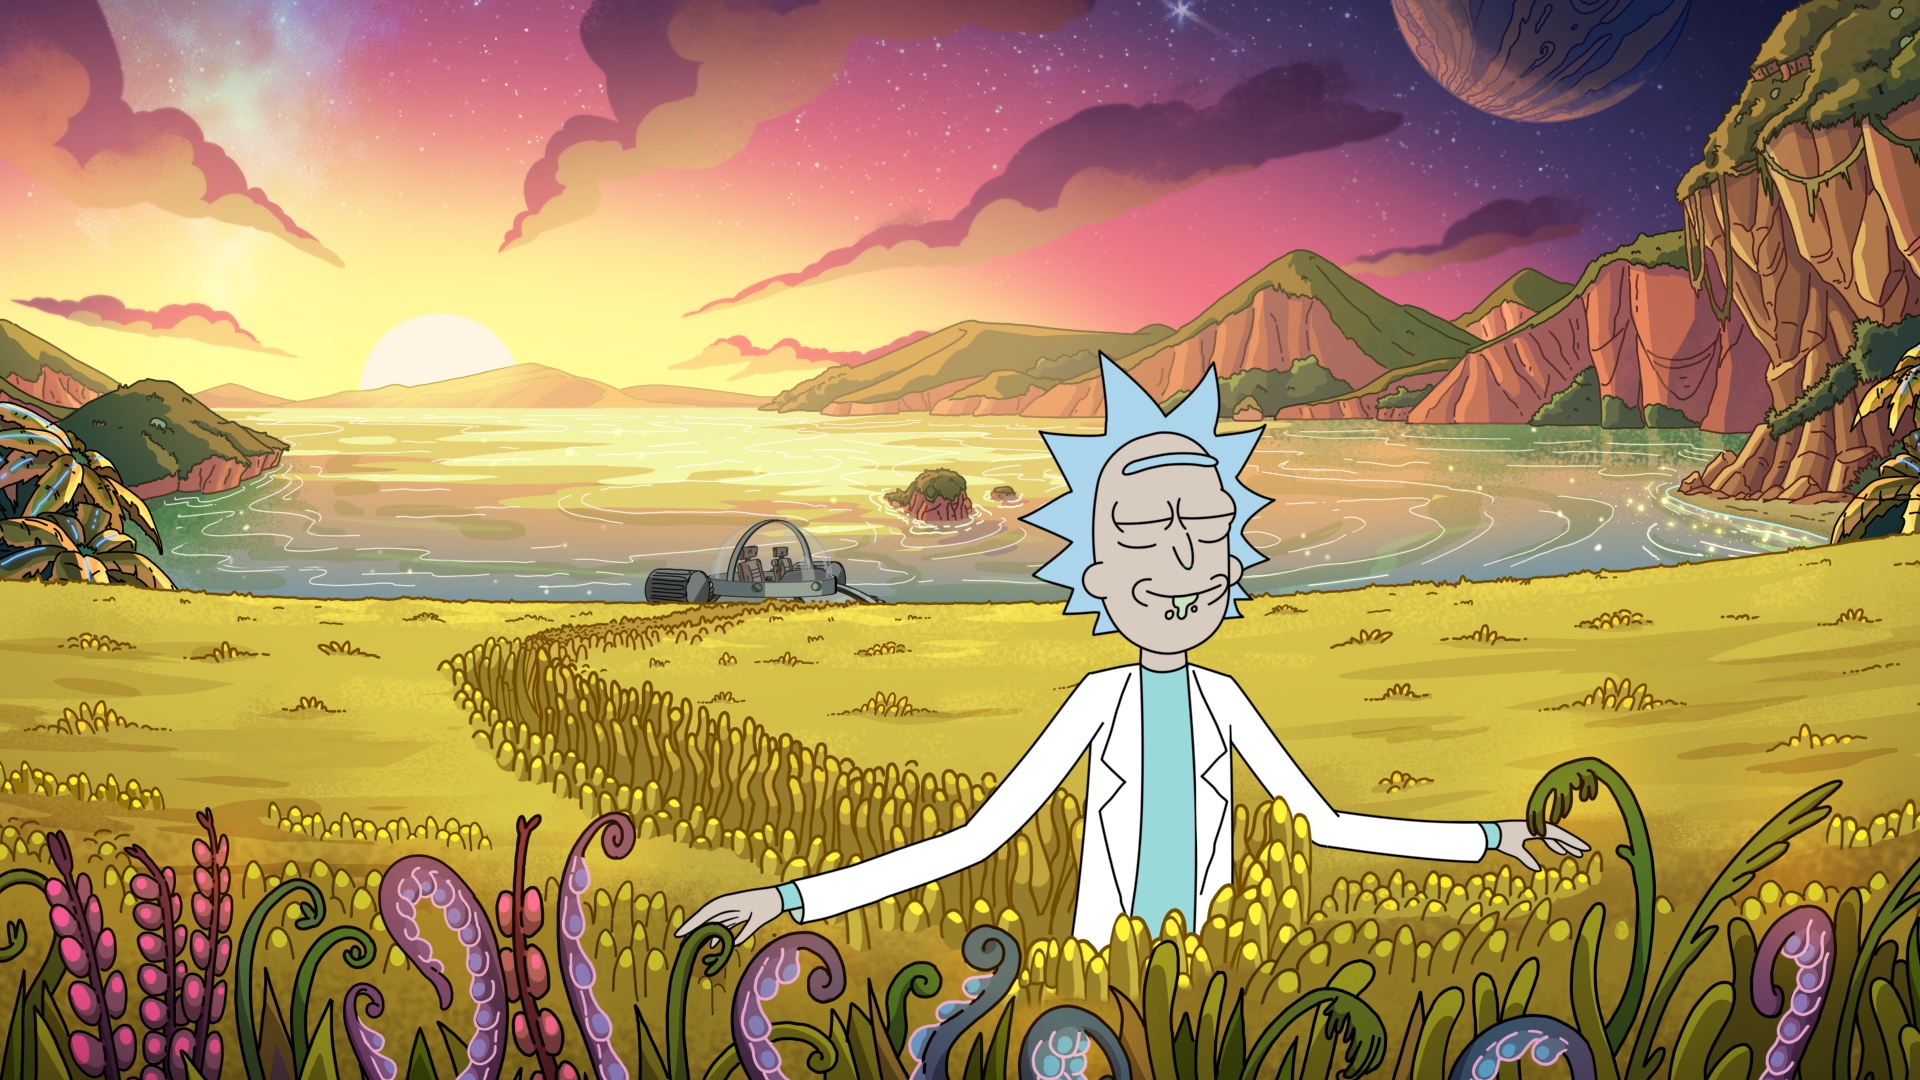 Rick and Morty Weed Wallpapers - Top Free Rick and Morty ...